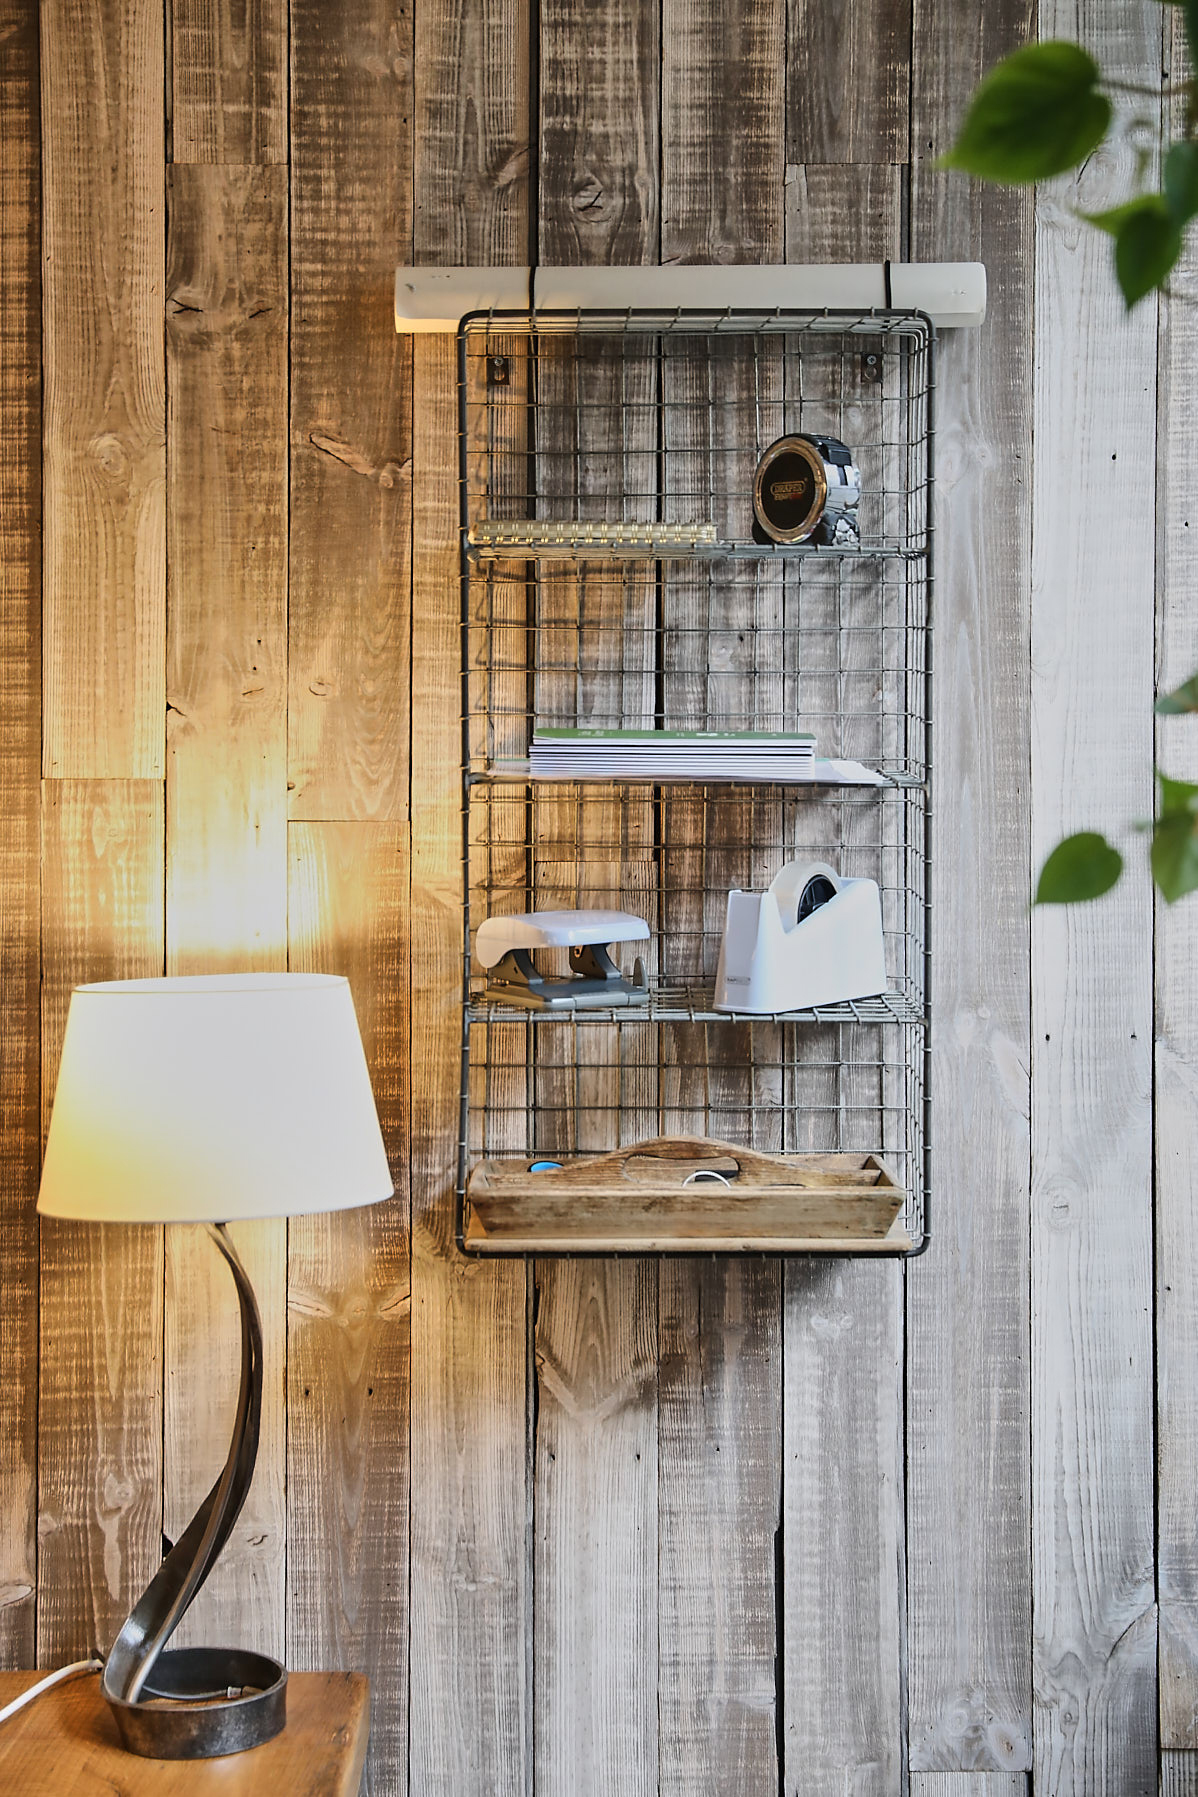 Reclaimed wall cladding with wire shelf